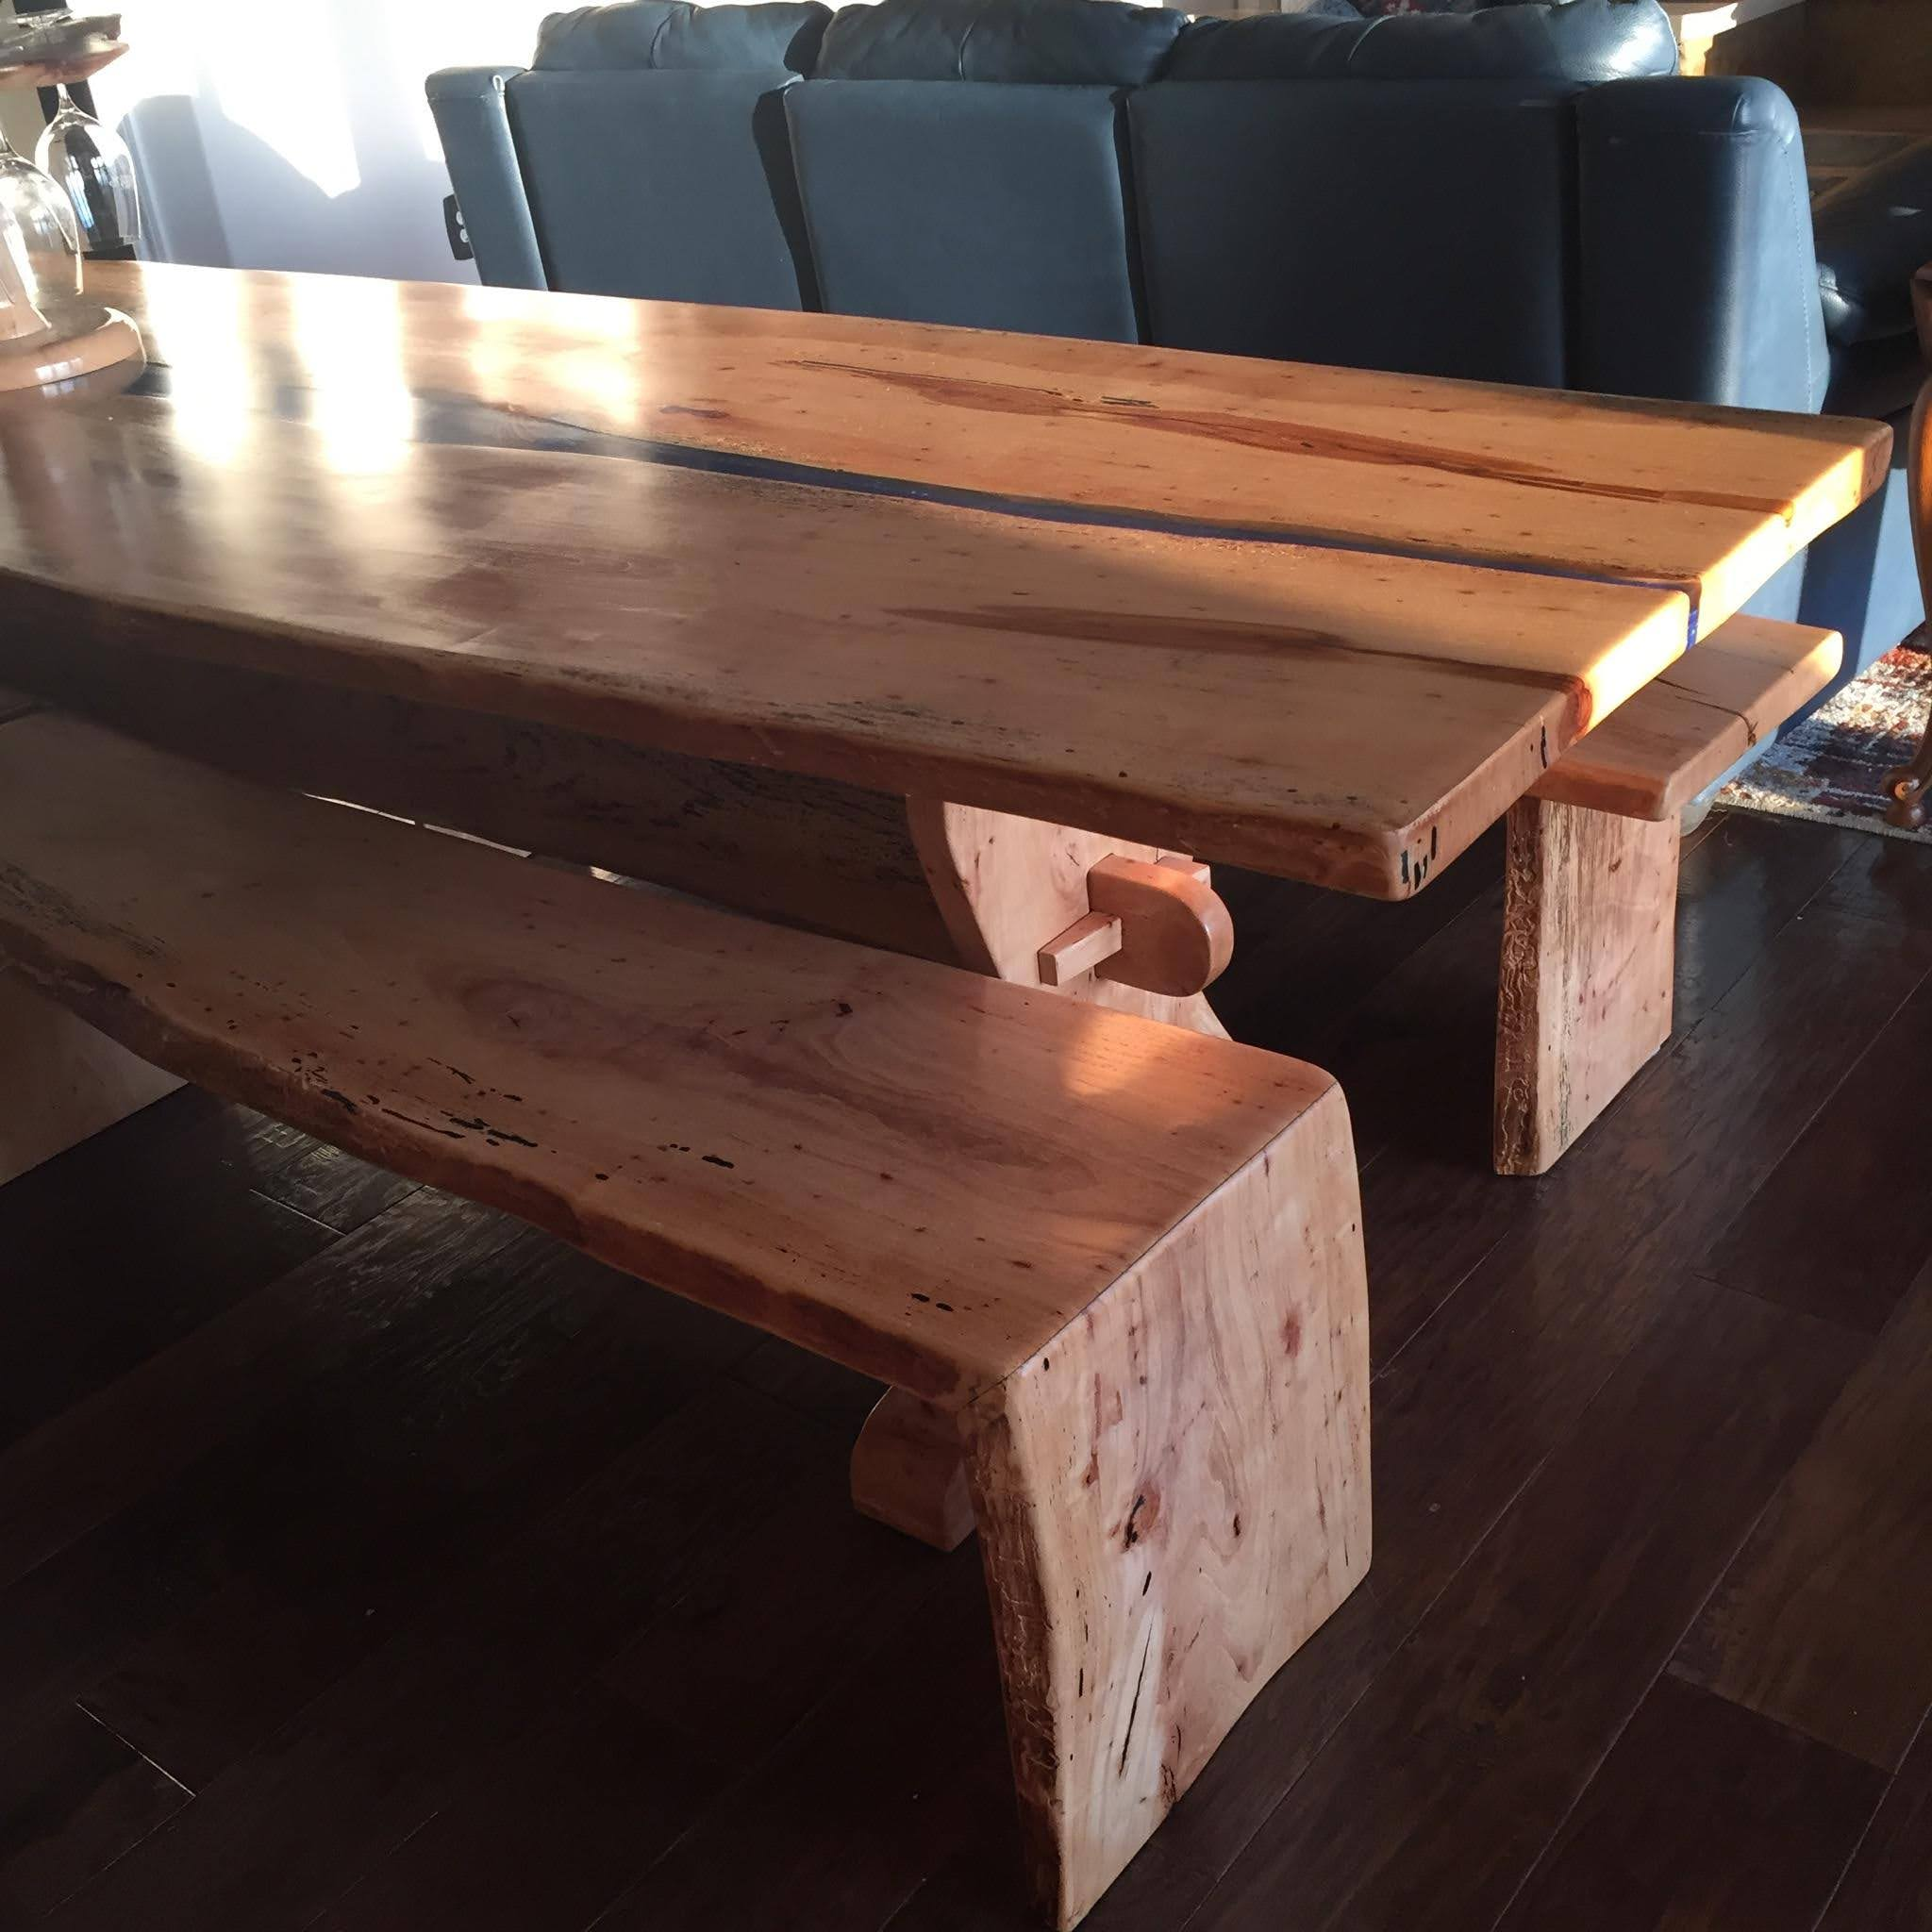 Pecan river table and benches_955181